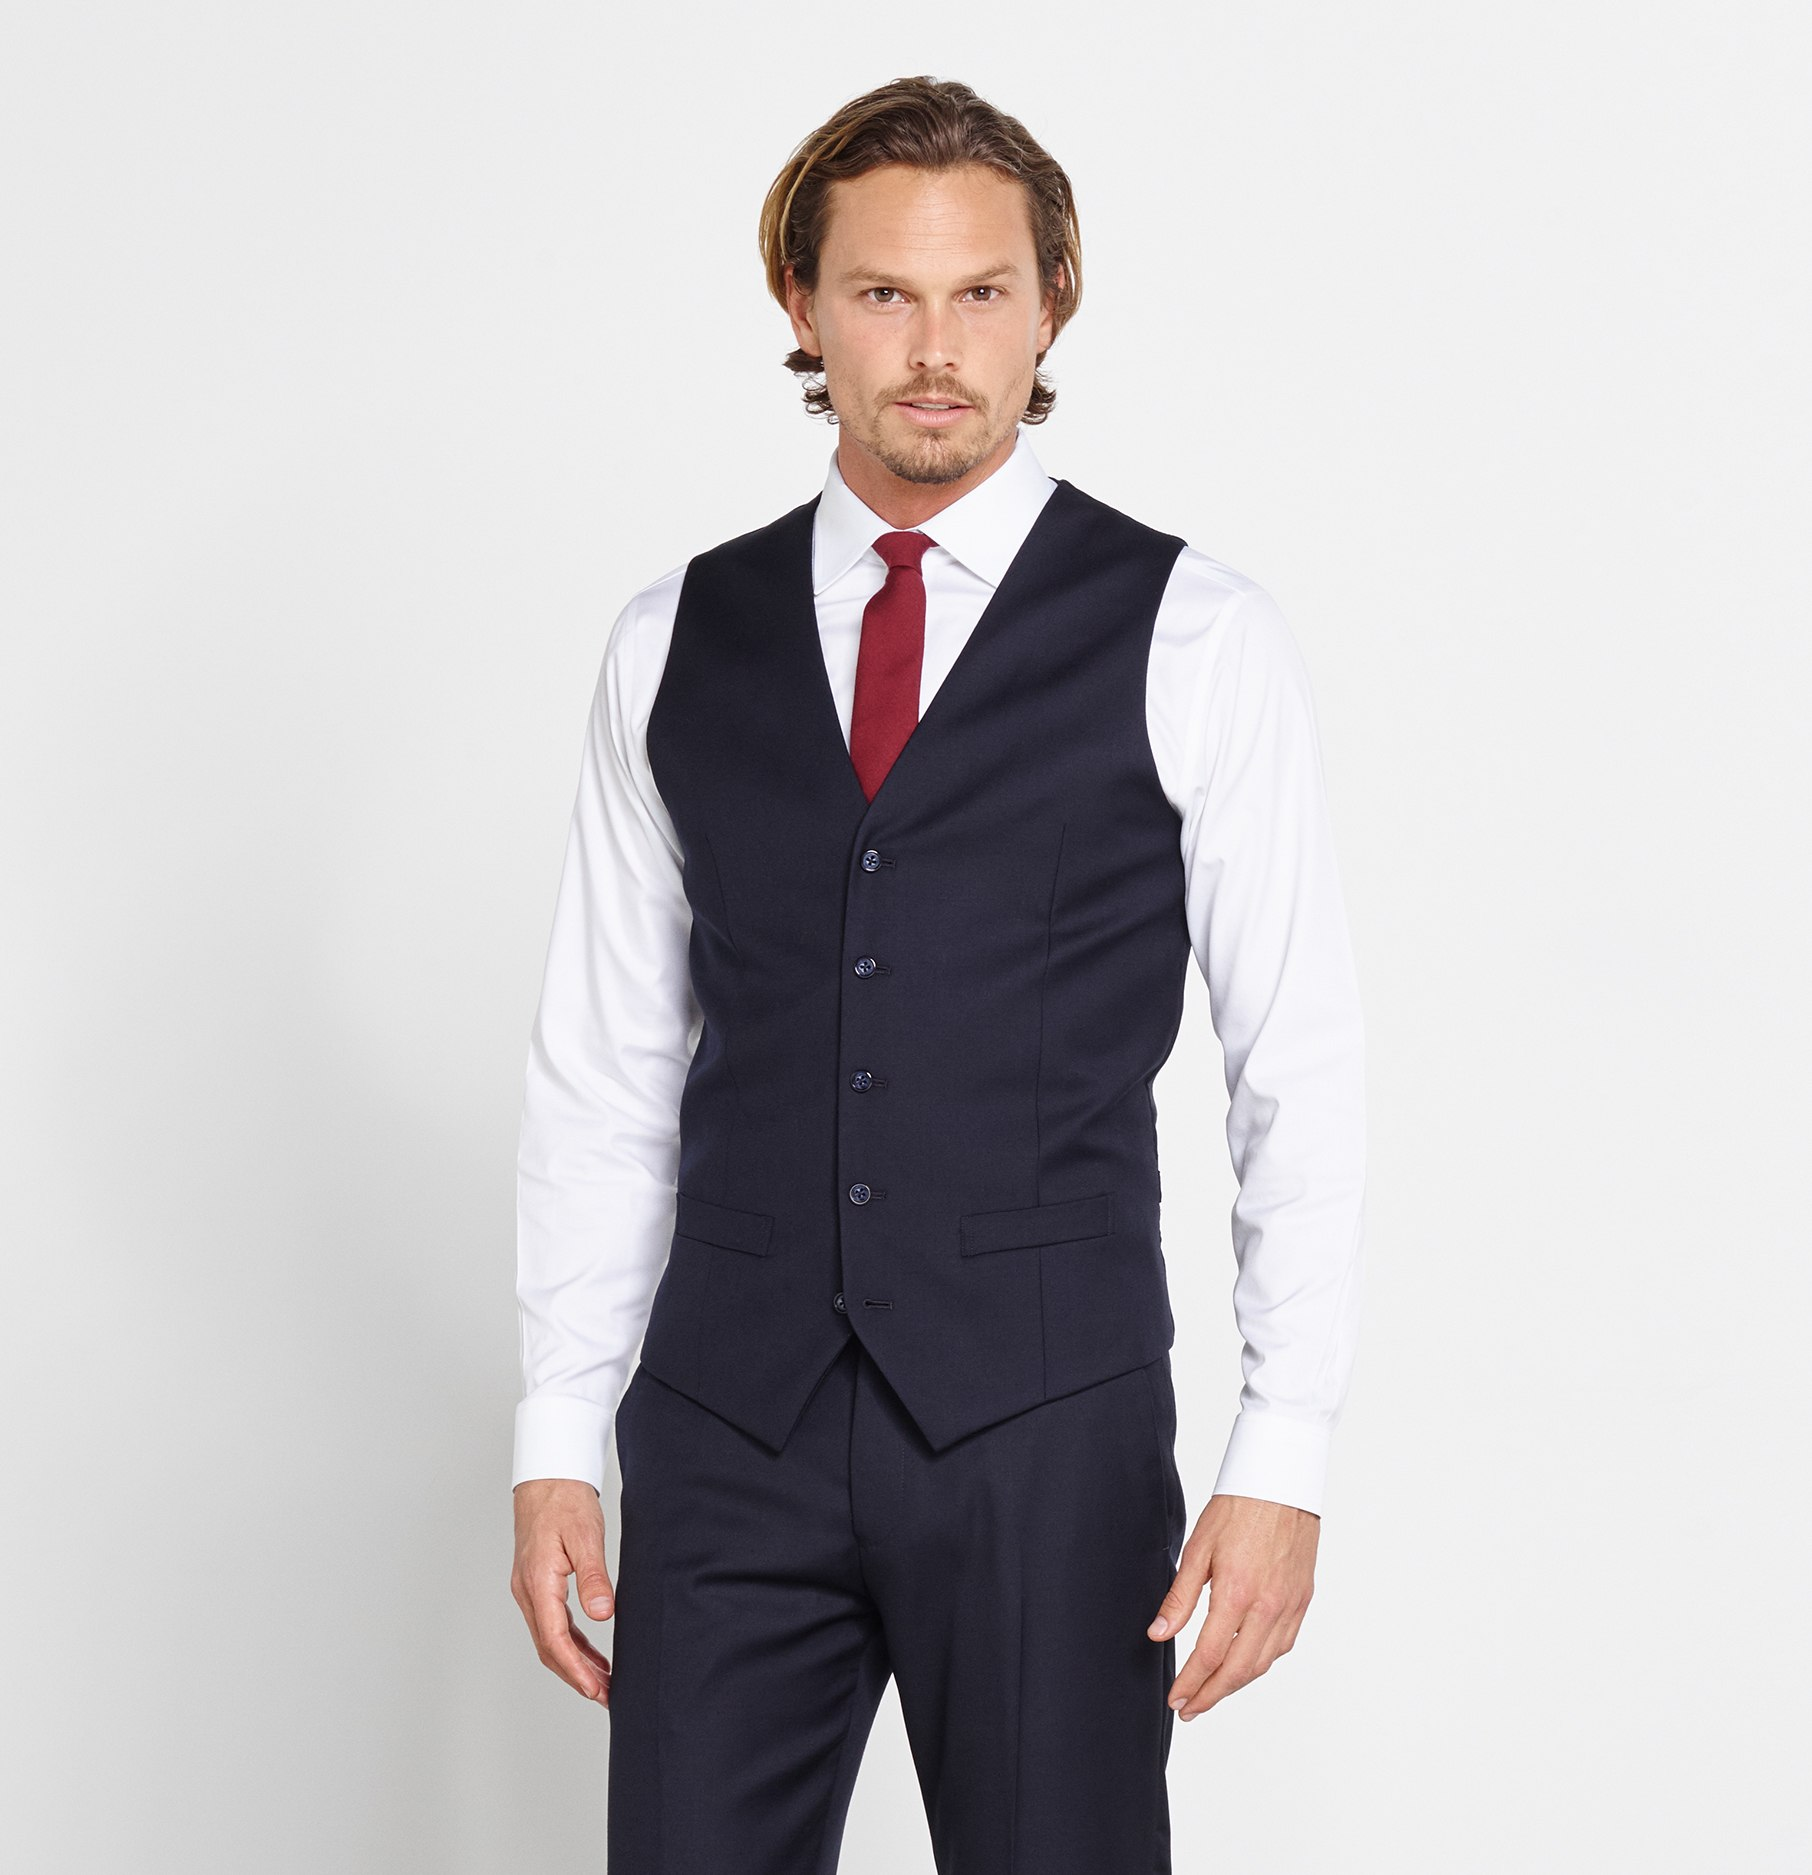 Vests for suits